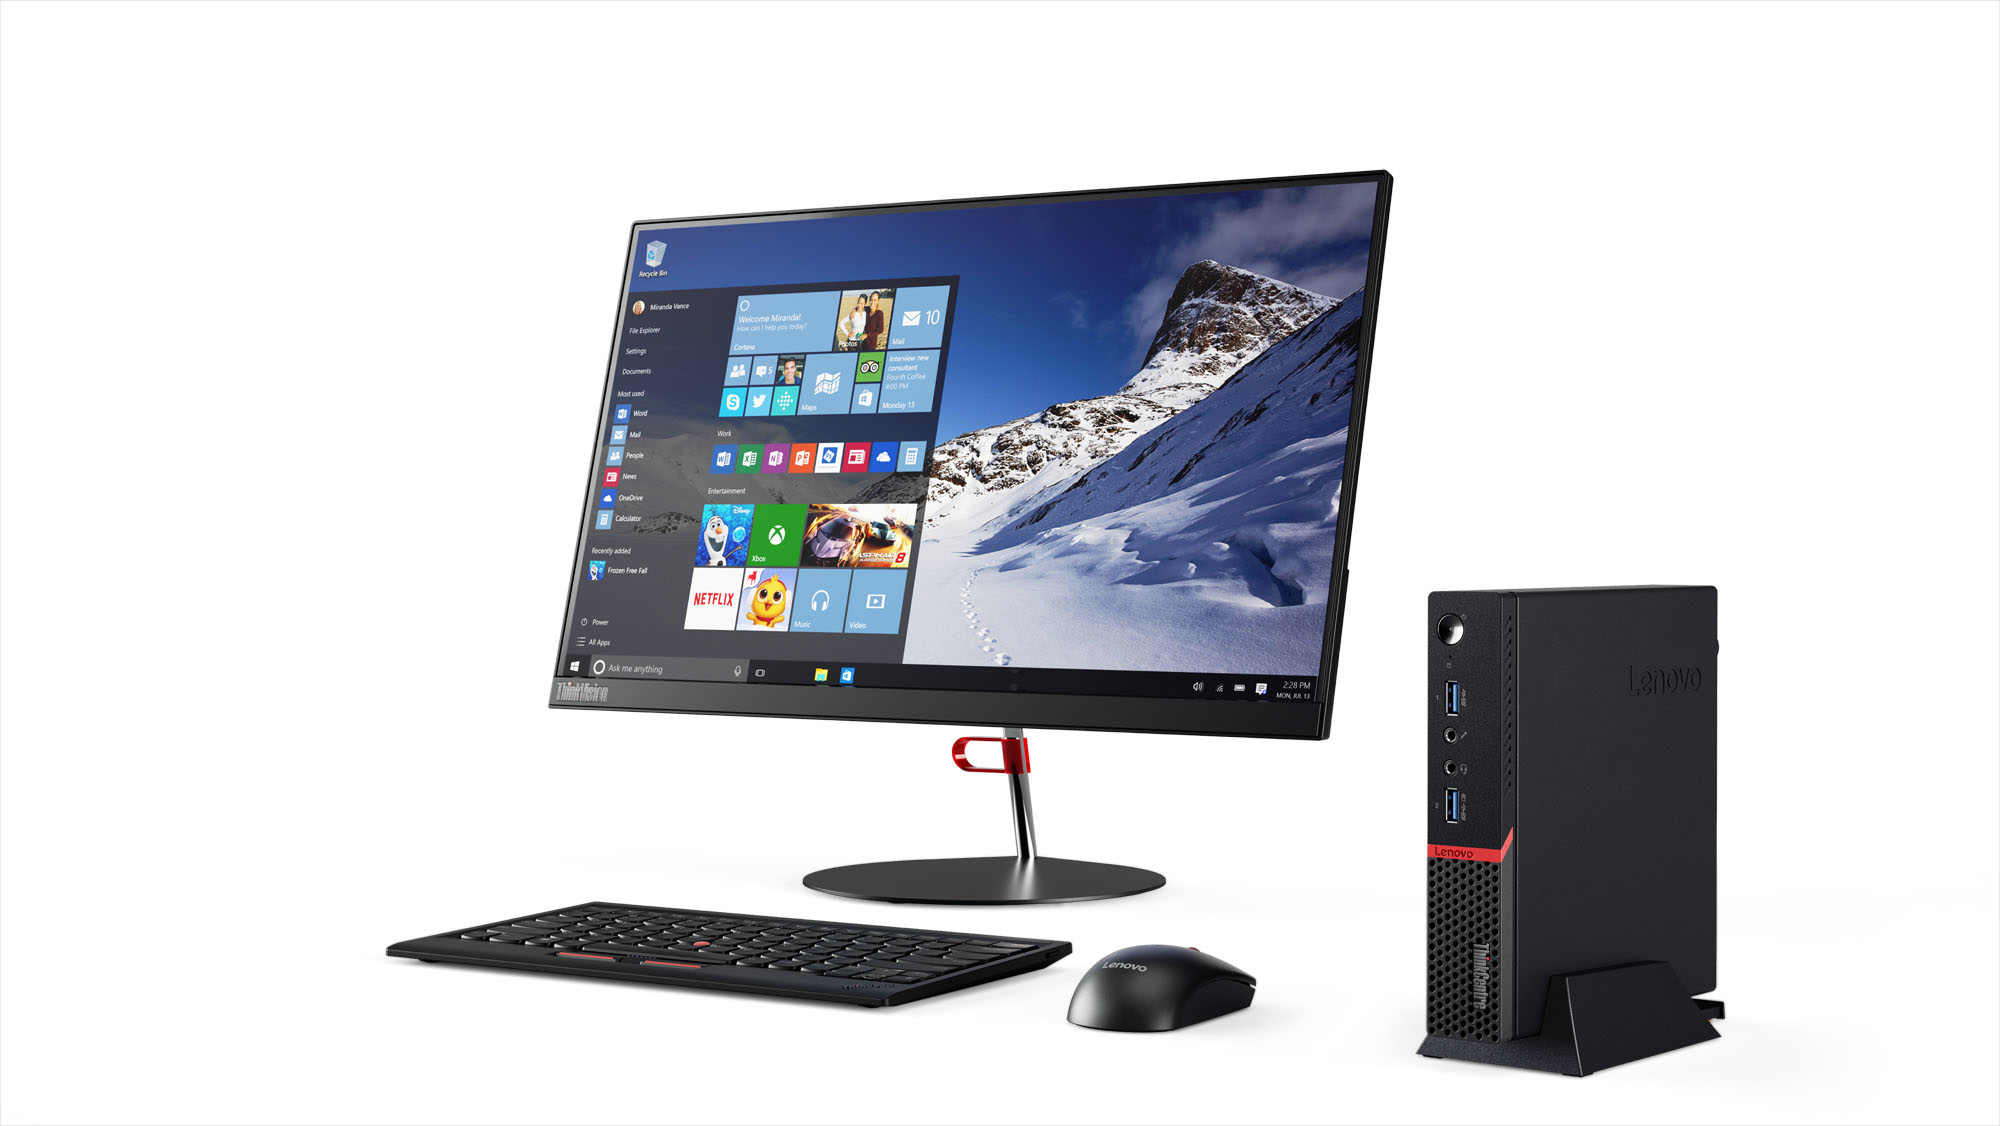 LENOVO 10G9001ASP THINKCENTRE M600 1.6GHZ J3710 MINI PC BLACK